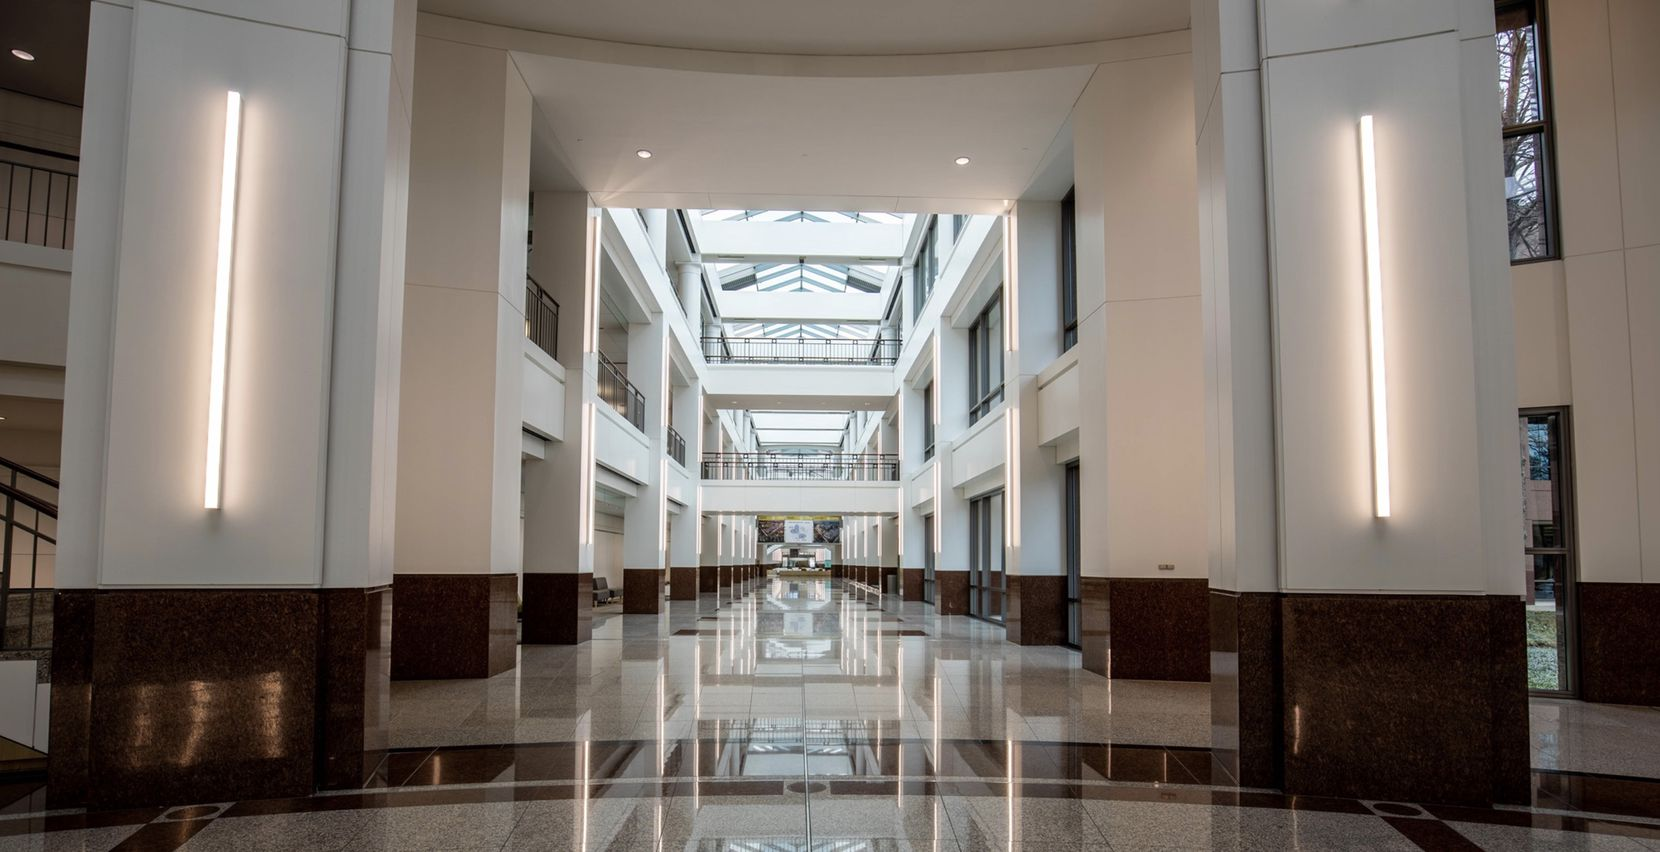 A large part of the former Penney headquarters space has already been remodeled.